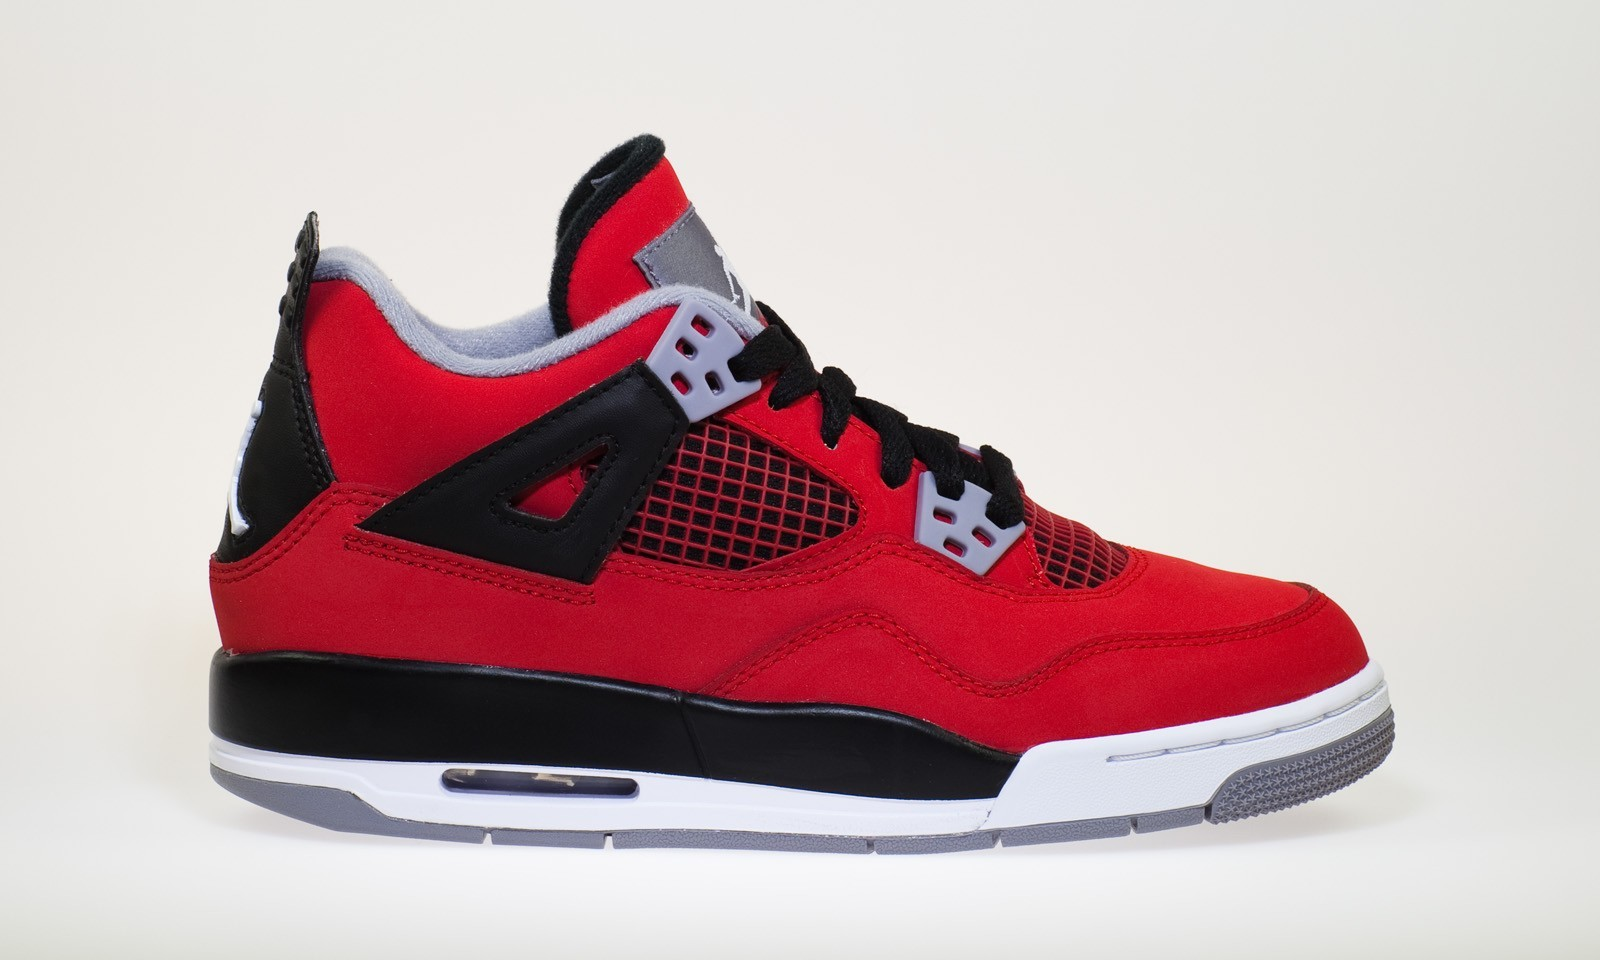 Air Jordan 4(IV) Retro - GS - Fire Red White Black Cement Grey Basketball Shoes 408452-603